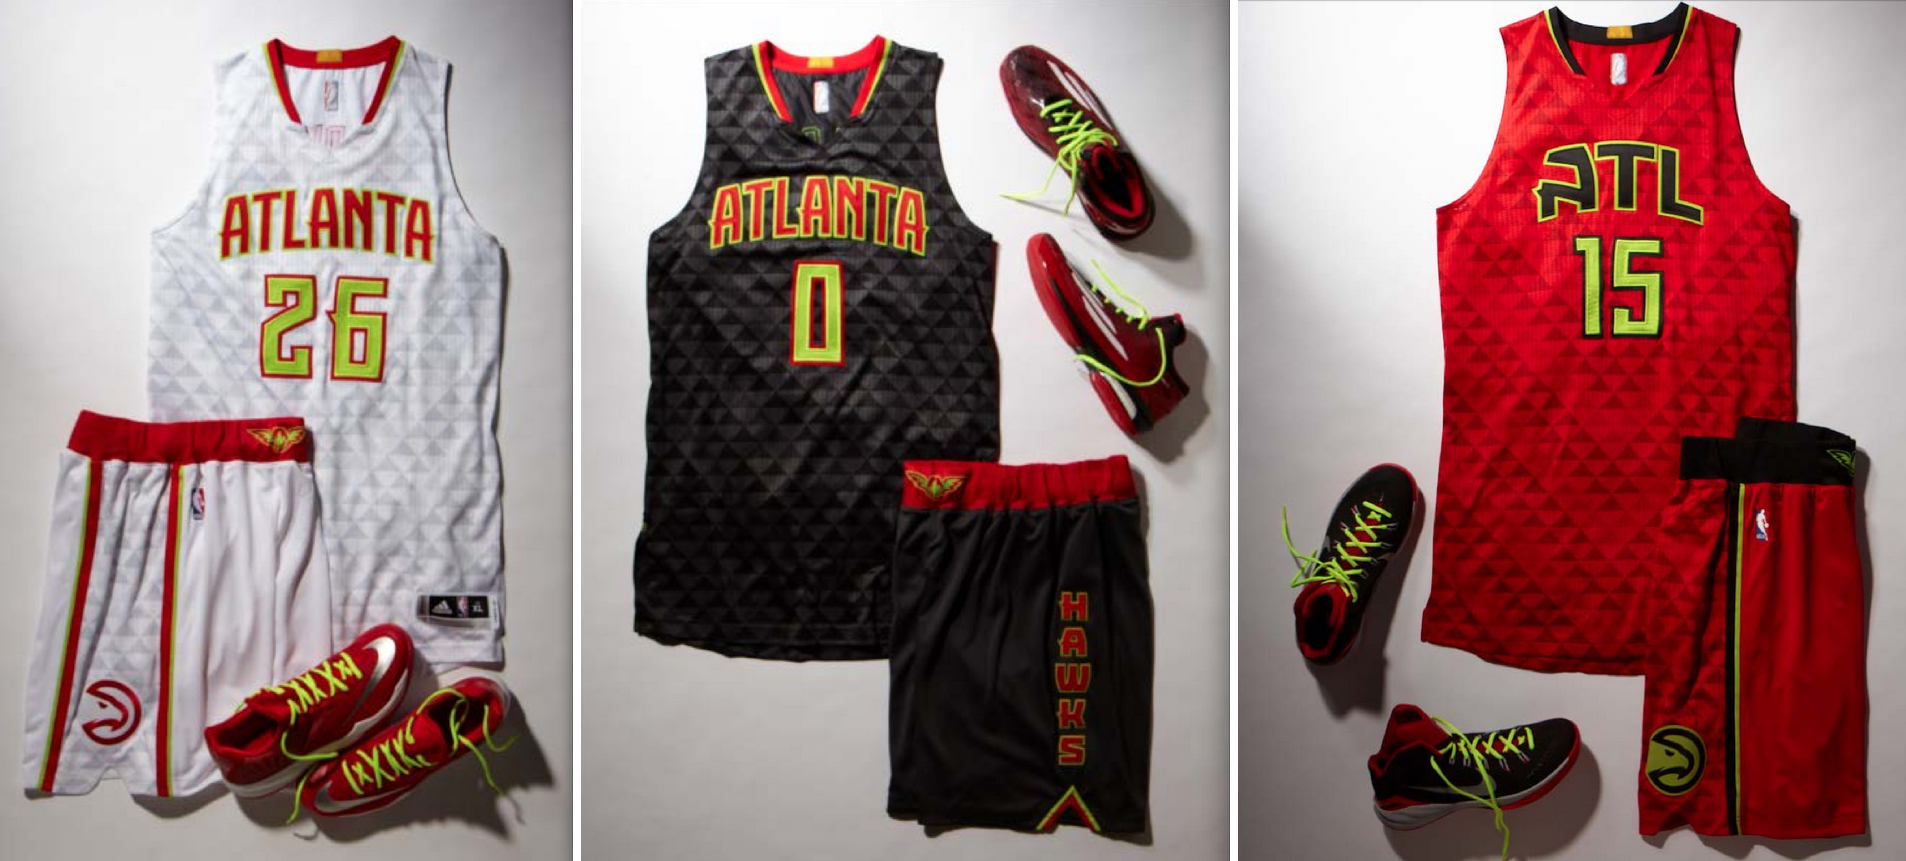 cc0f50ccb28 Hawks Uni Photos Posted Ahead of Today's Unveiling